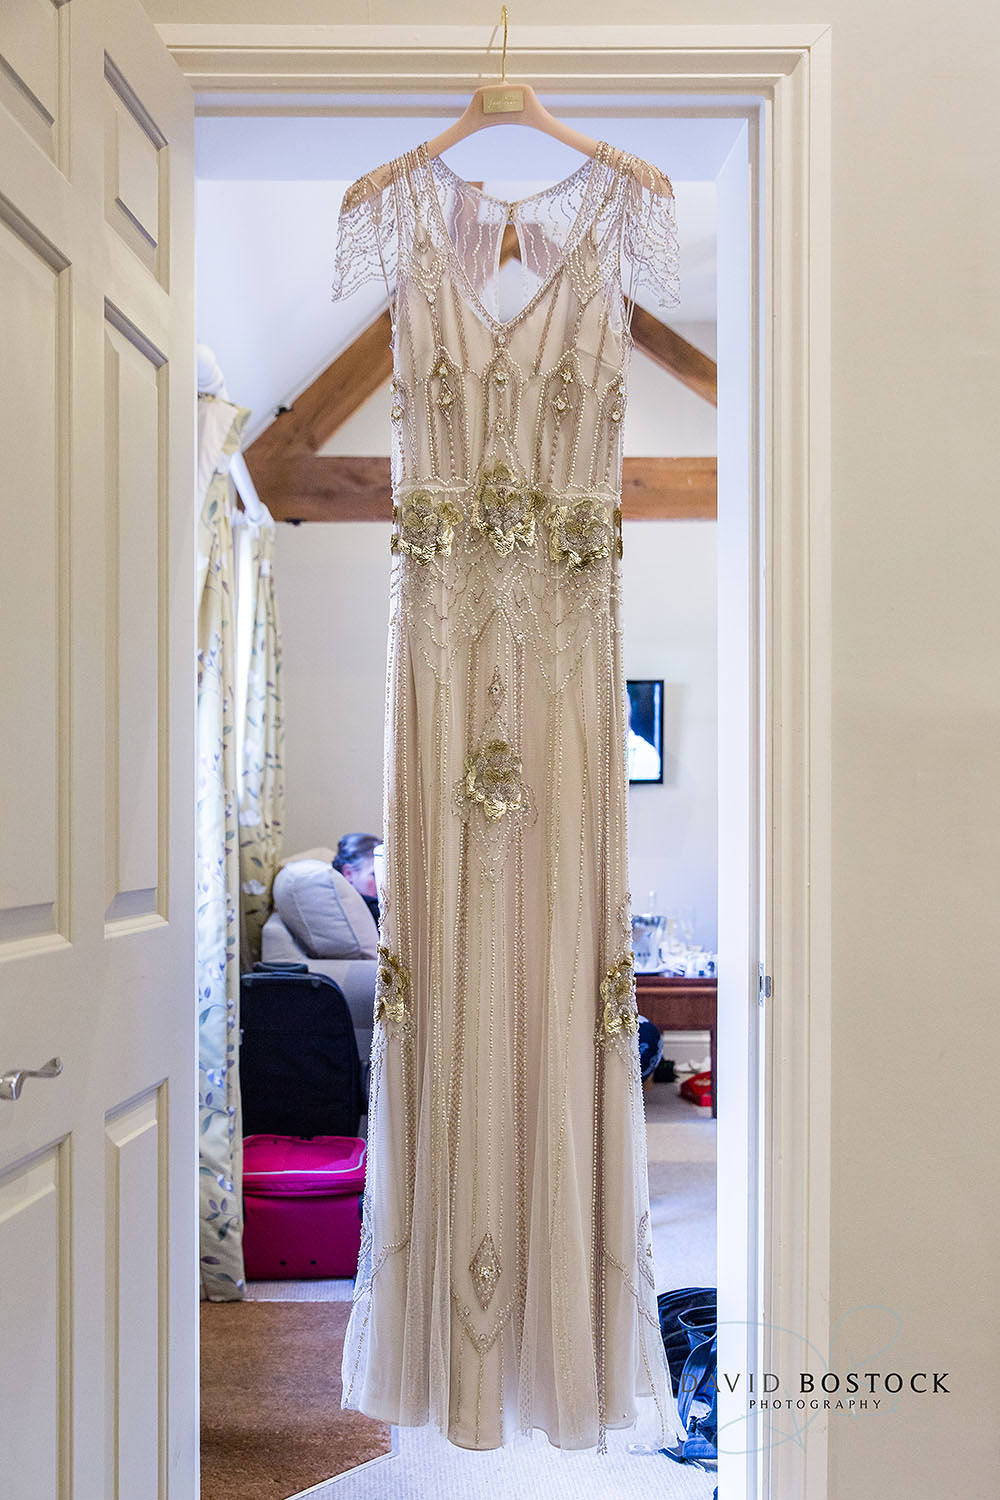 The Dairy Waddesdon Jenny Packham wedding dress